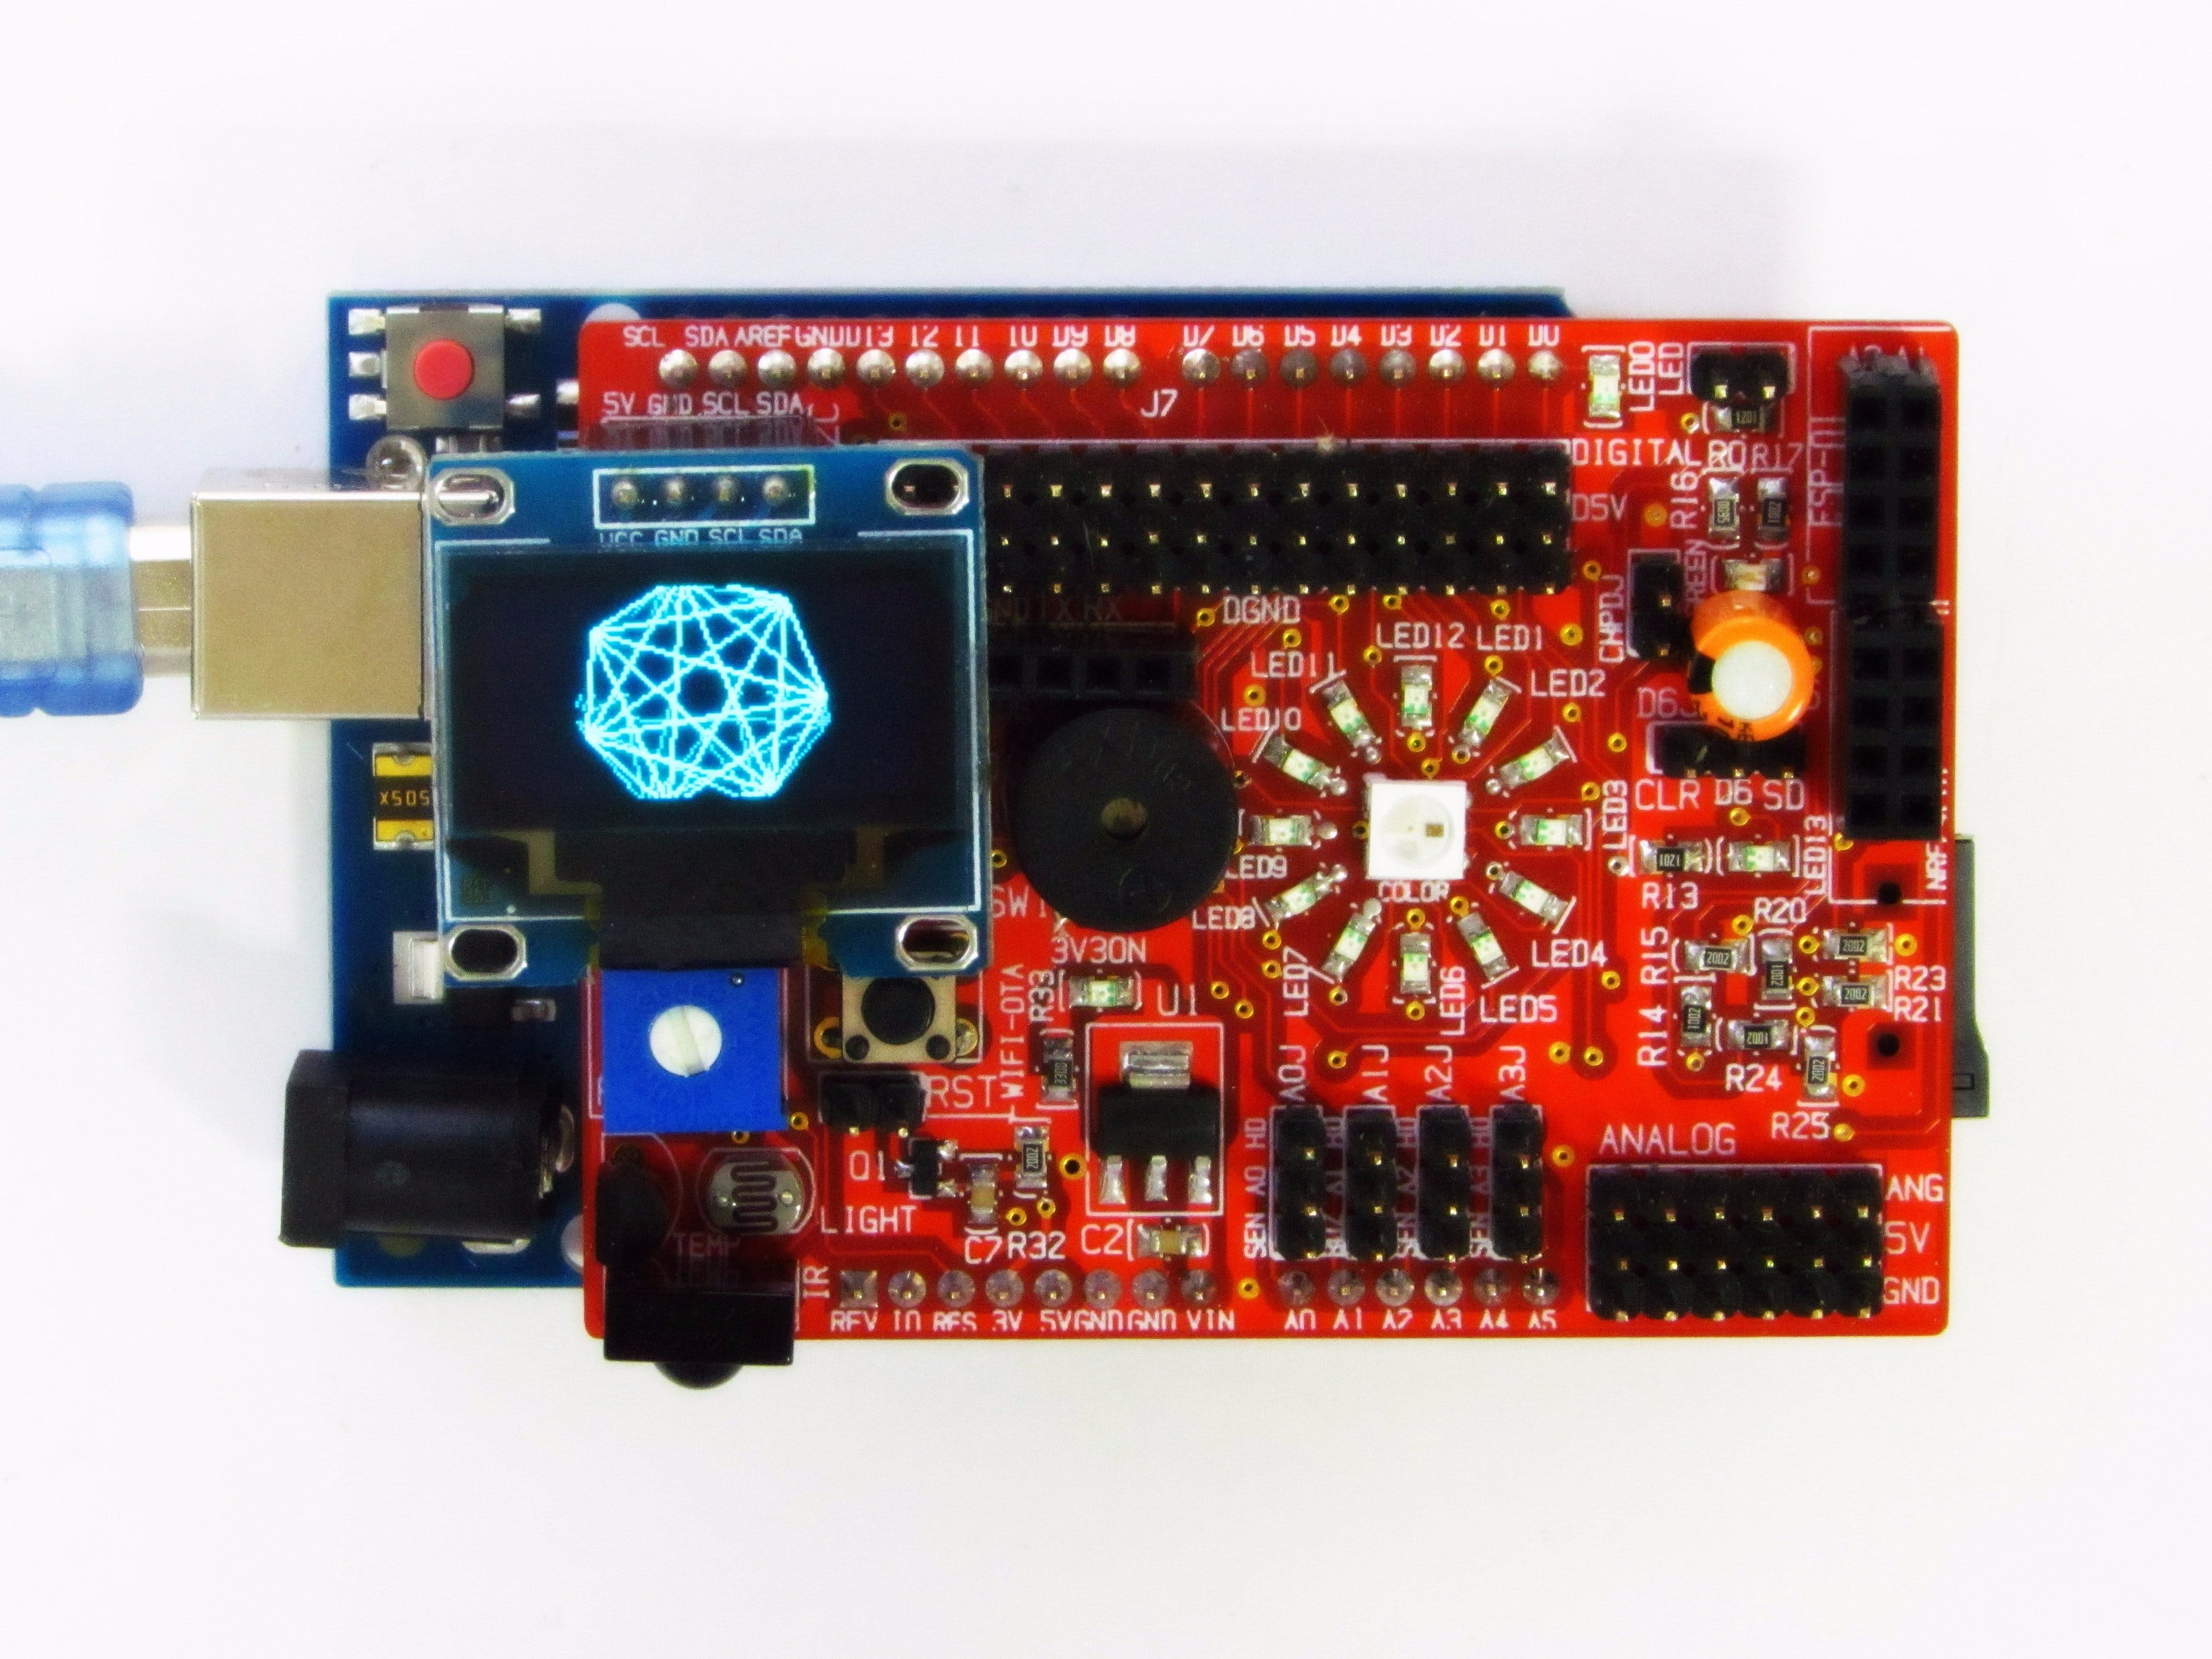 Animation in I2C OLED Display with idiotware shield